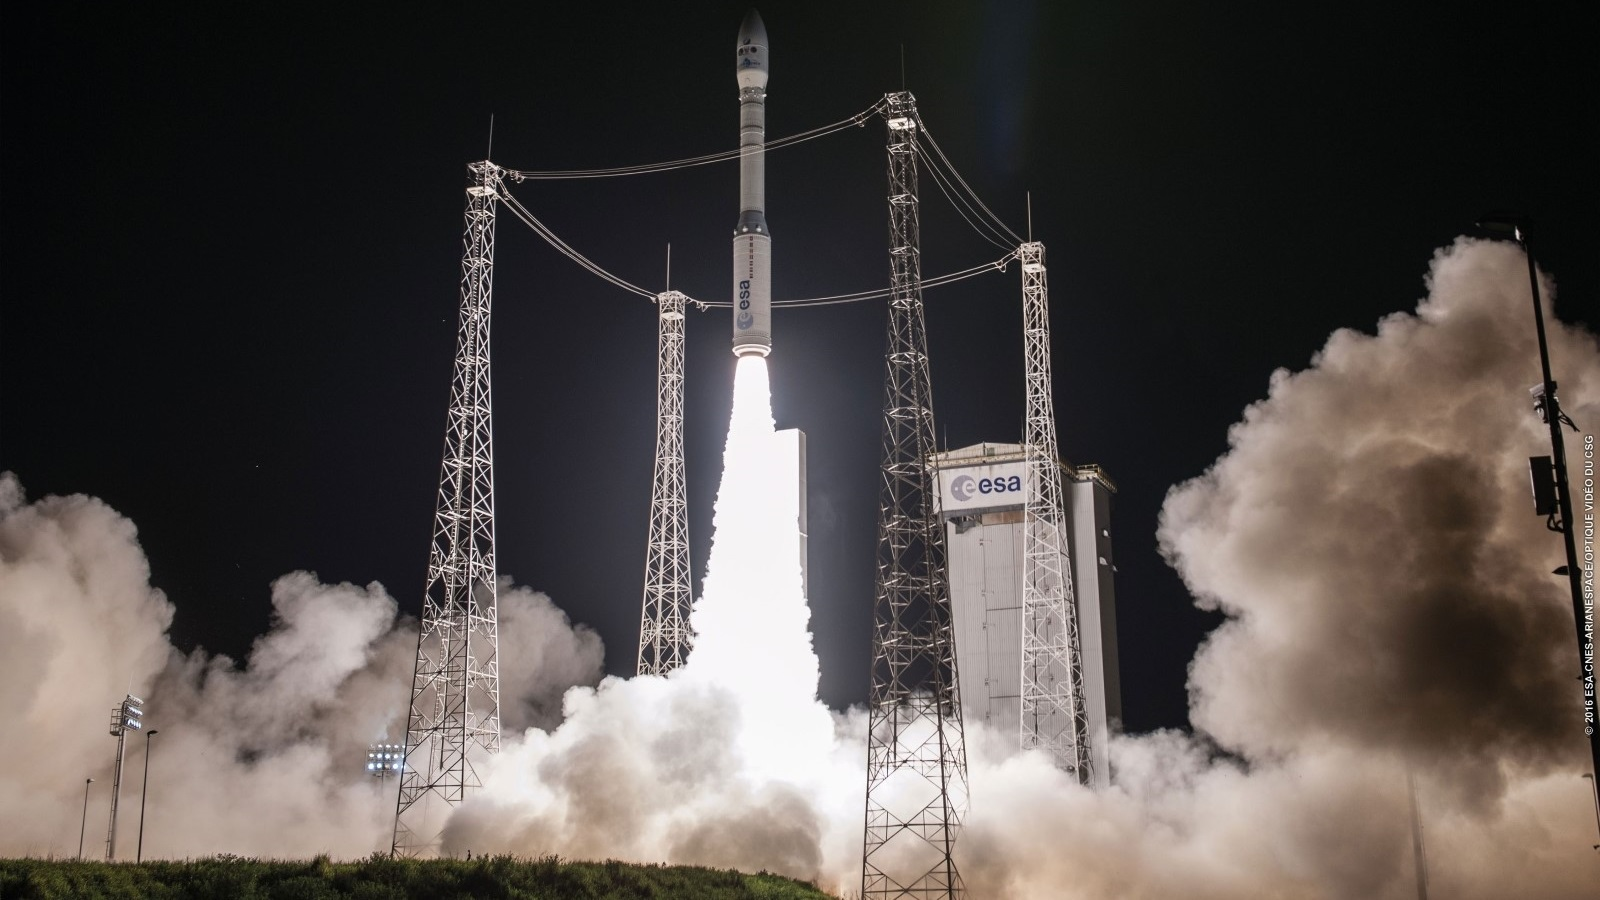 Vega flight VV07 with the PerúSAT-1 and SkySats-4 to -7 satellites